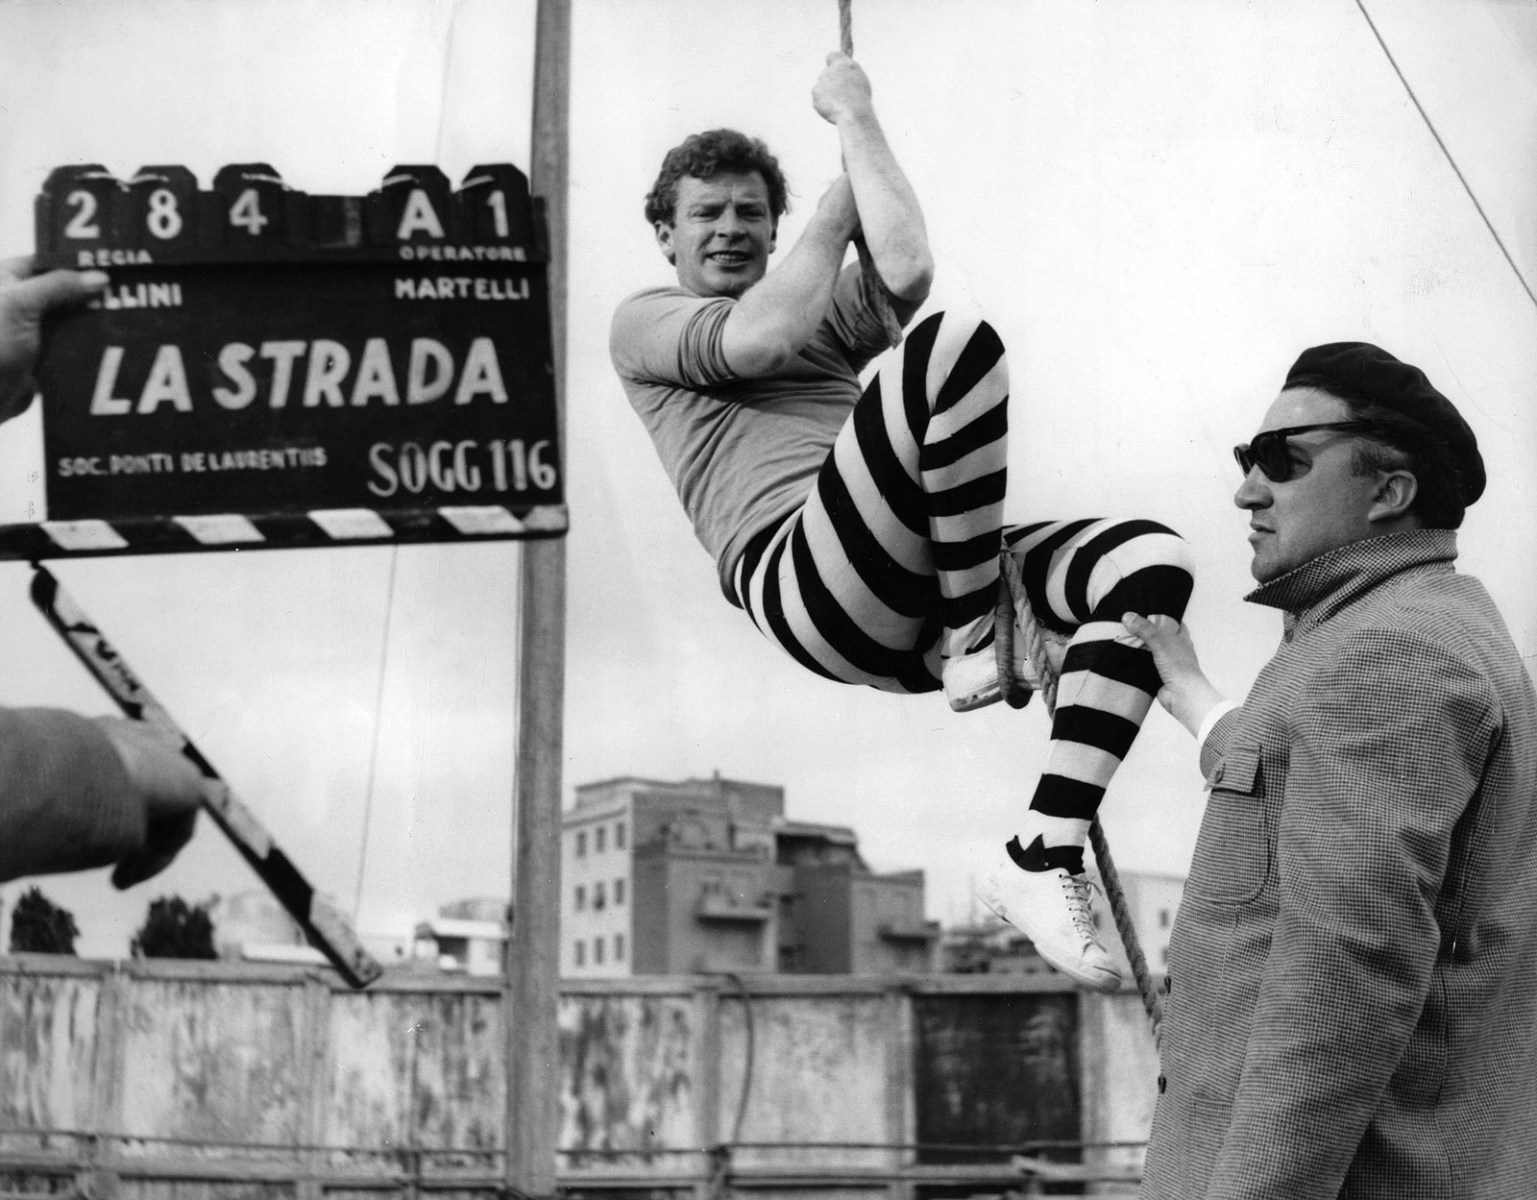 On Set of La Strada (The Road 1954) Behind the Scenes